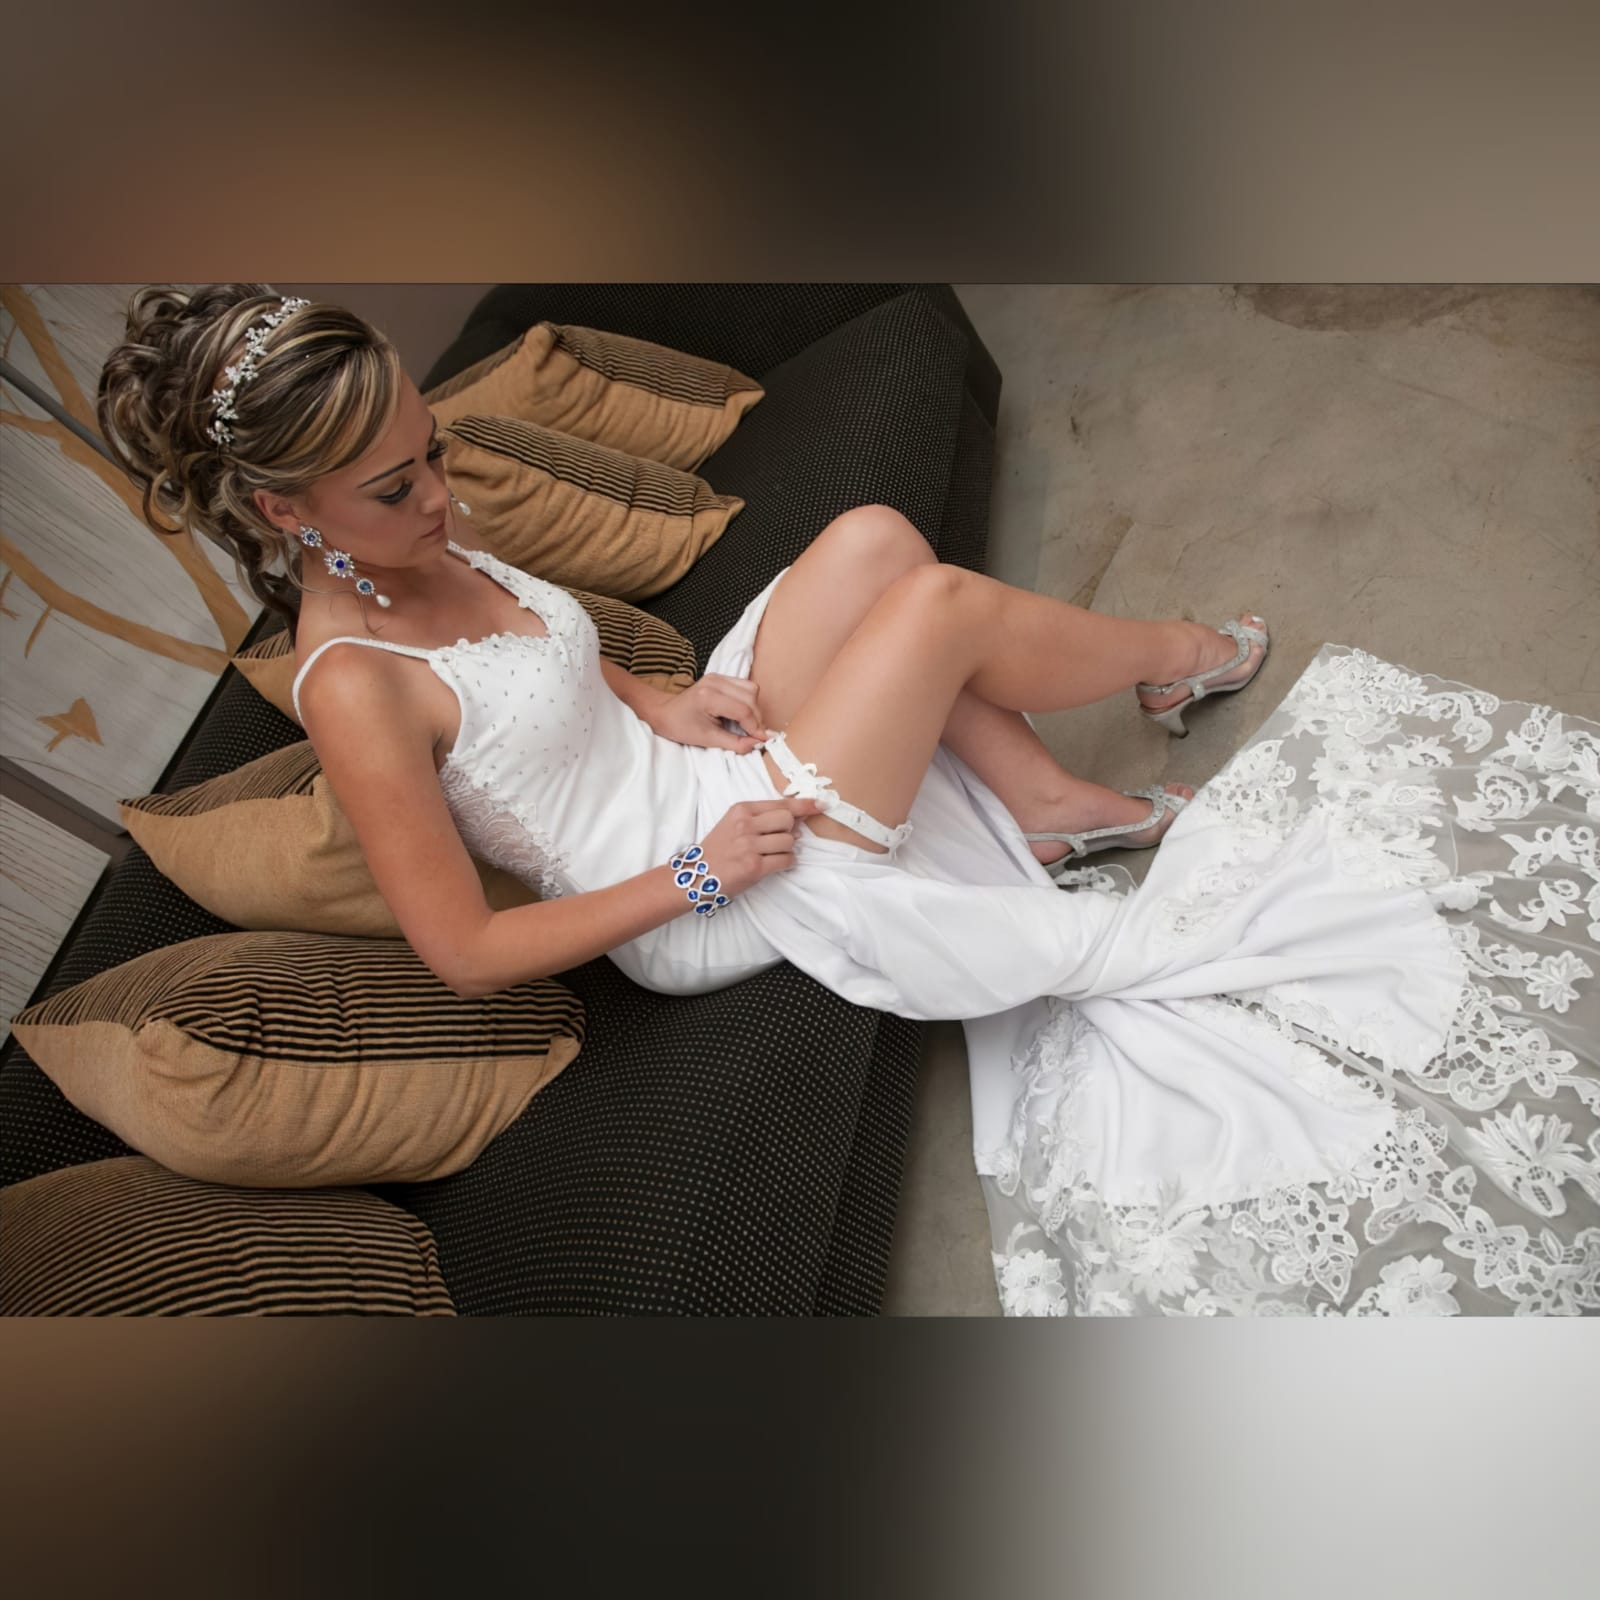 Stunning white soft mermaid lace wedding dress 8 a stunning white soft mermaid lace wedding dress designed and made per measurement sent to my client in south africa. An absolute romantic and elegant design that made her day more special and memorable. Wedding dress with a beaded bust. Sheer lace back and a long lace train to add a dramatic touch to this dress